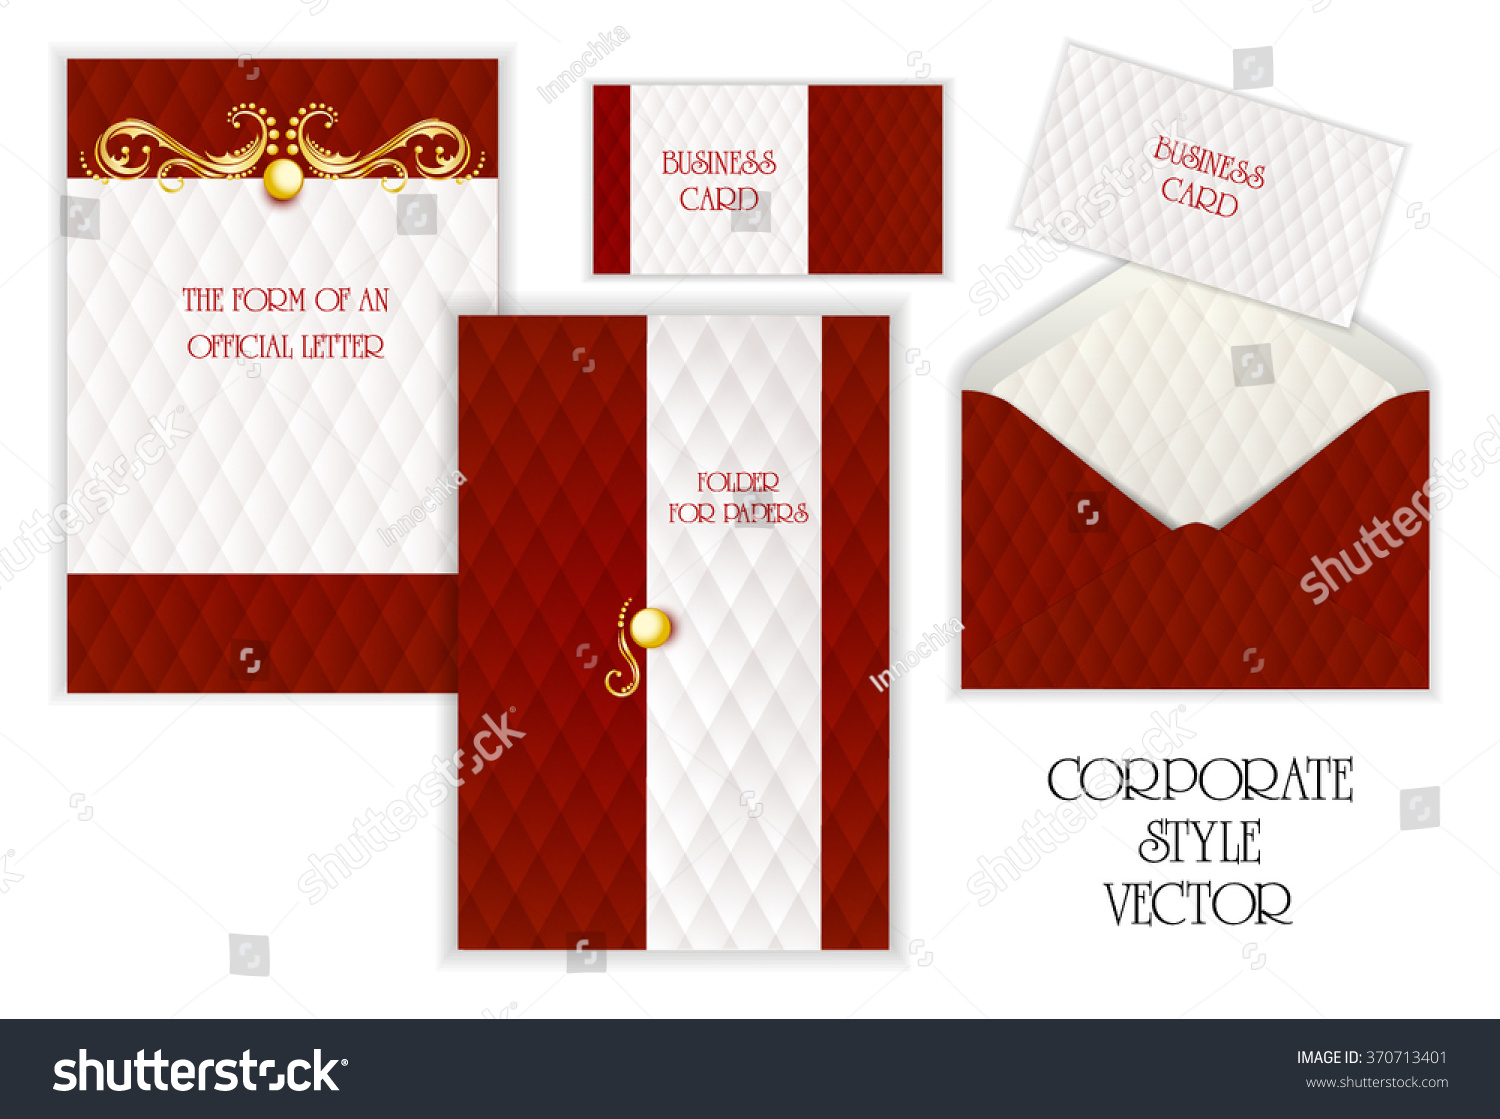 Business Card Folder Paper Envelopes Letterhead Stock Vector ...